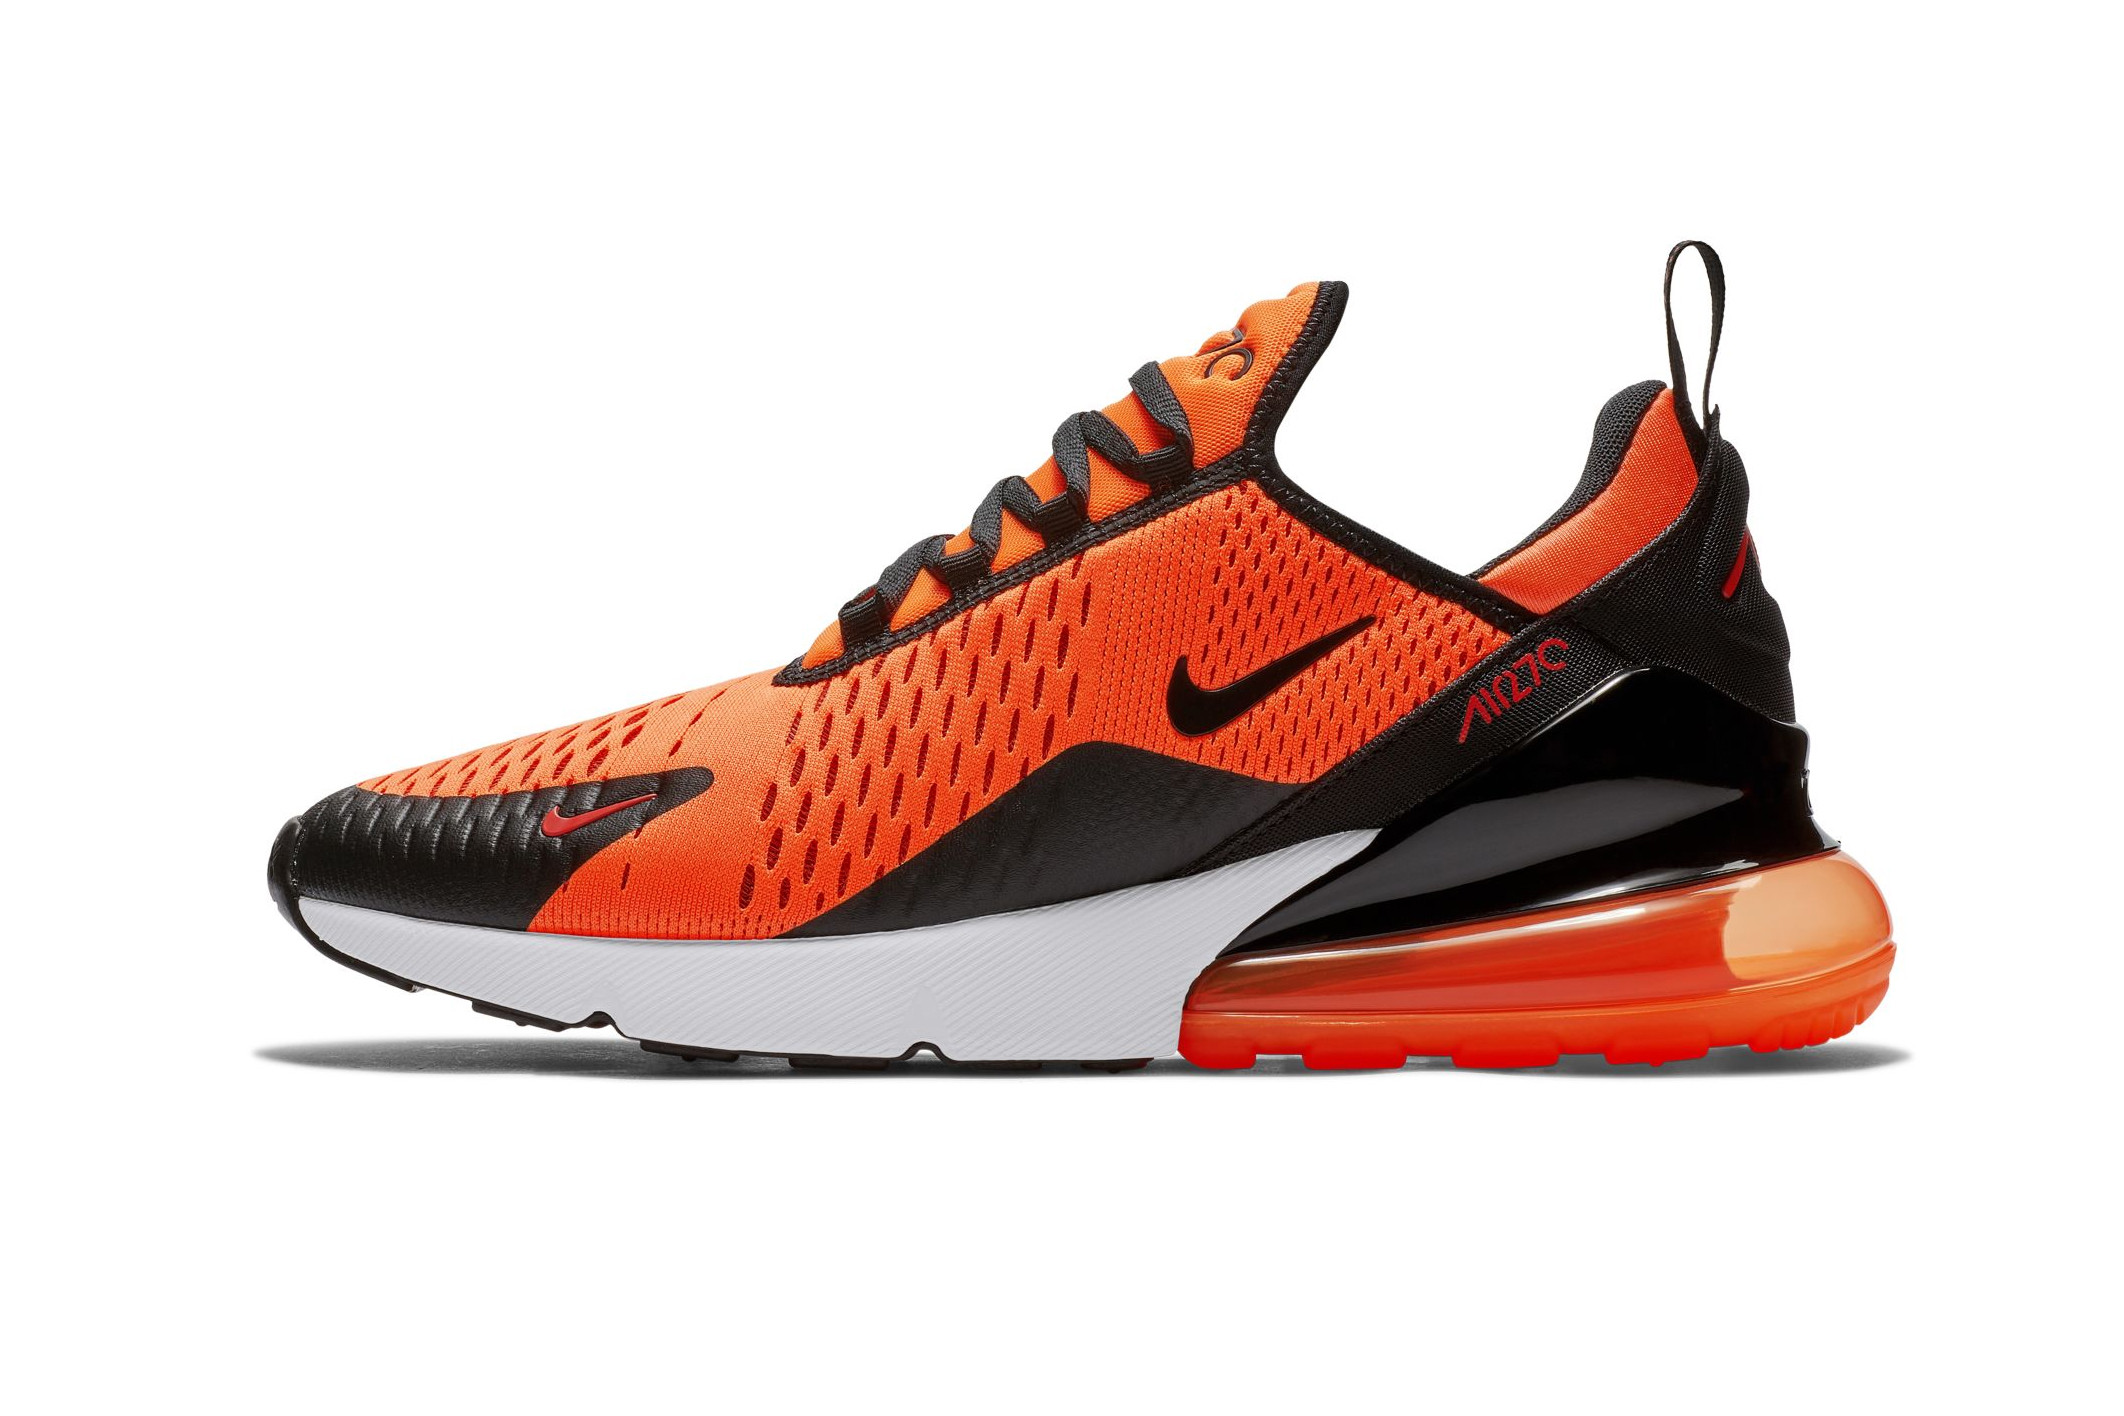 https---hypebeast.com-image-2018-08-nike-gives-the-air-max-270-a-total-orange-rework-01